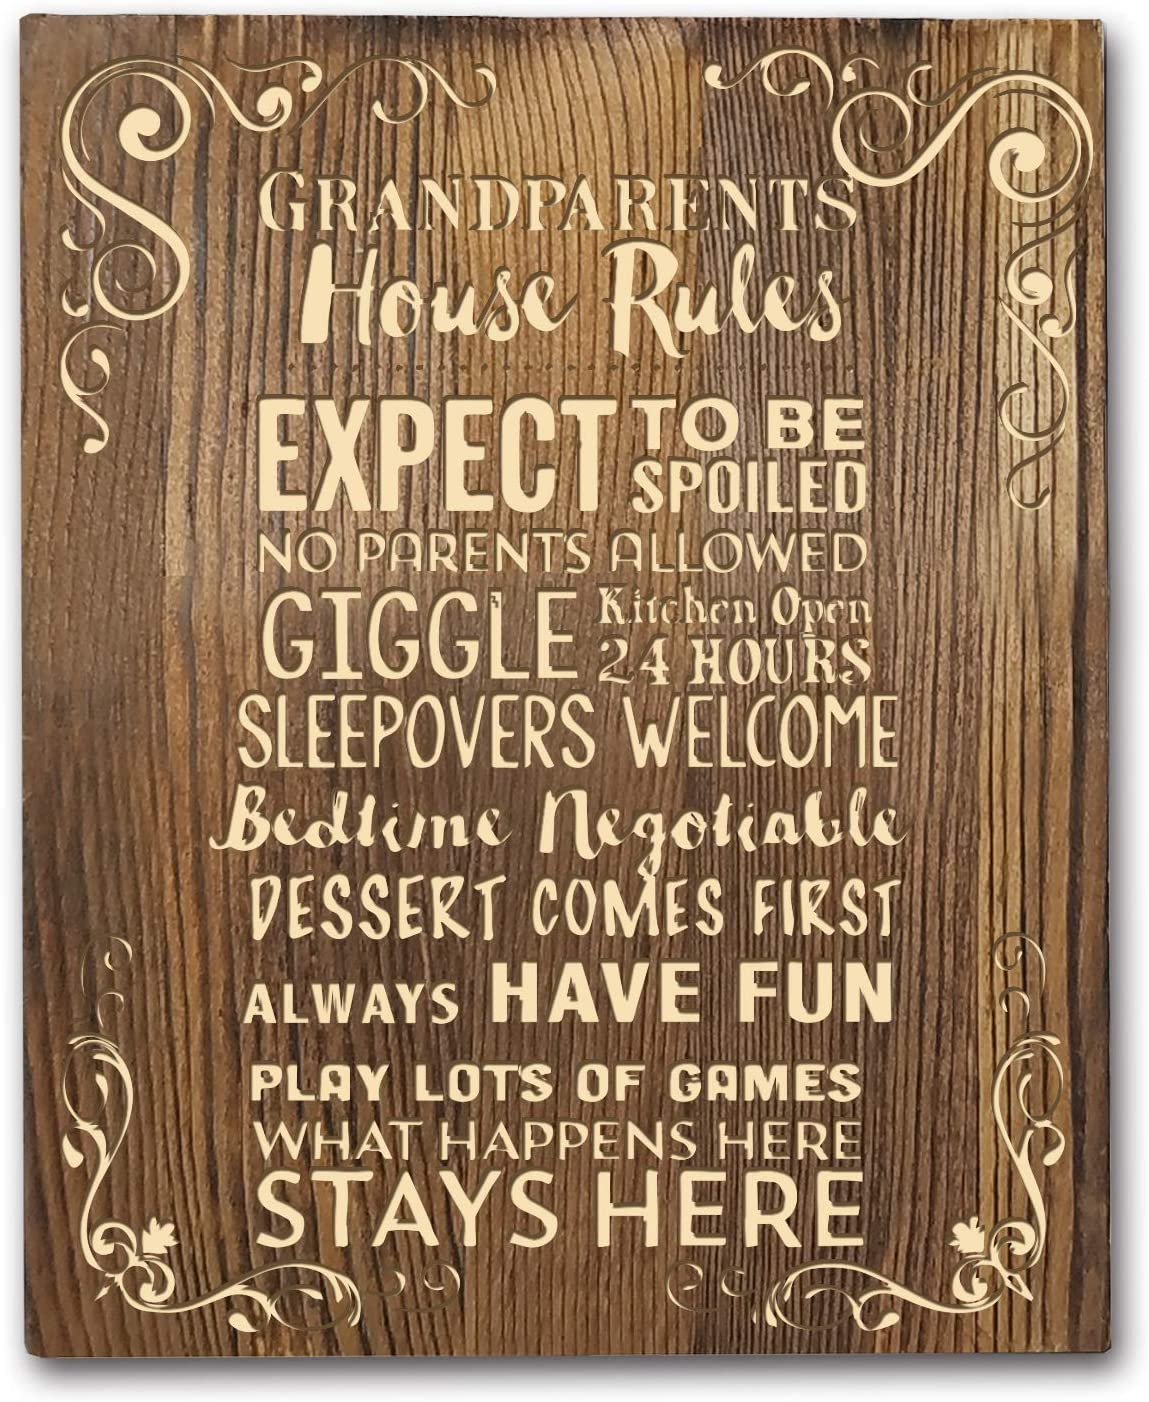 Grandparents House Rules 8